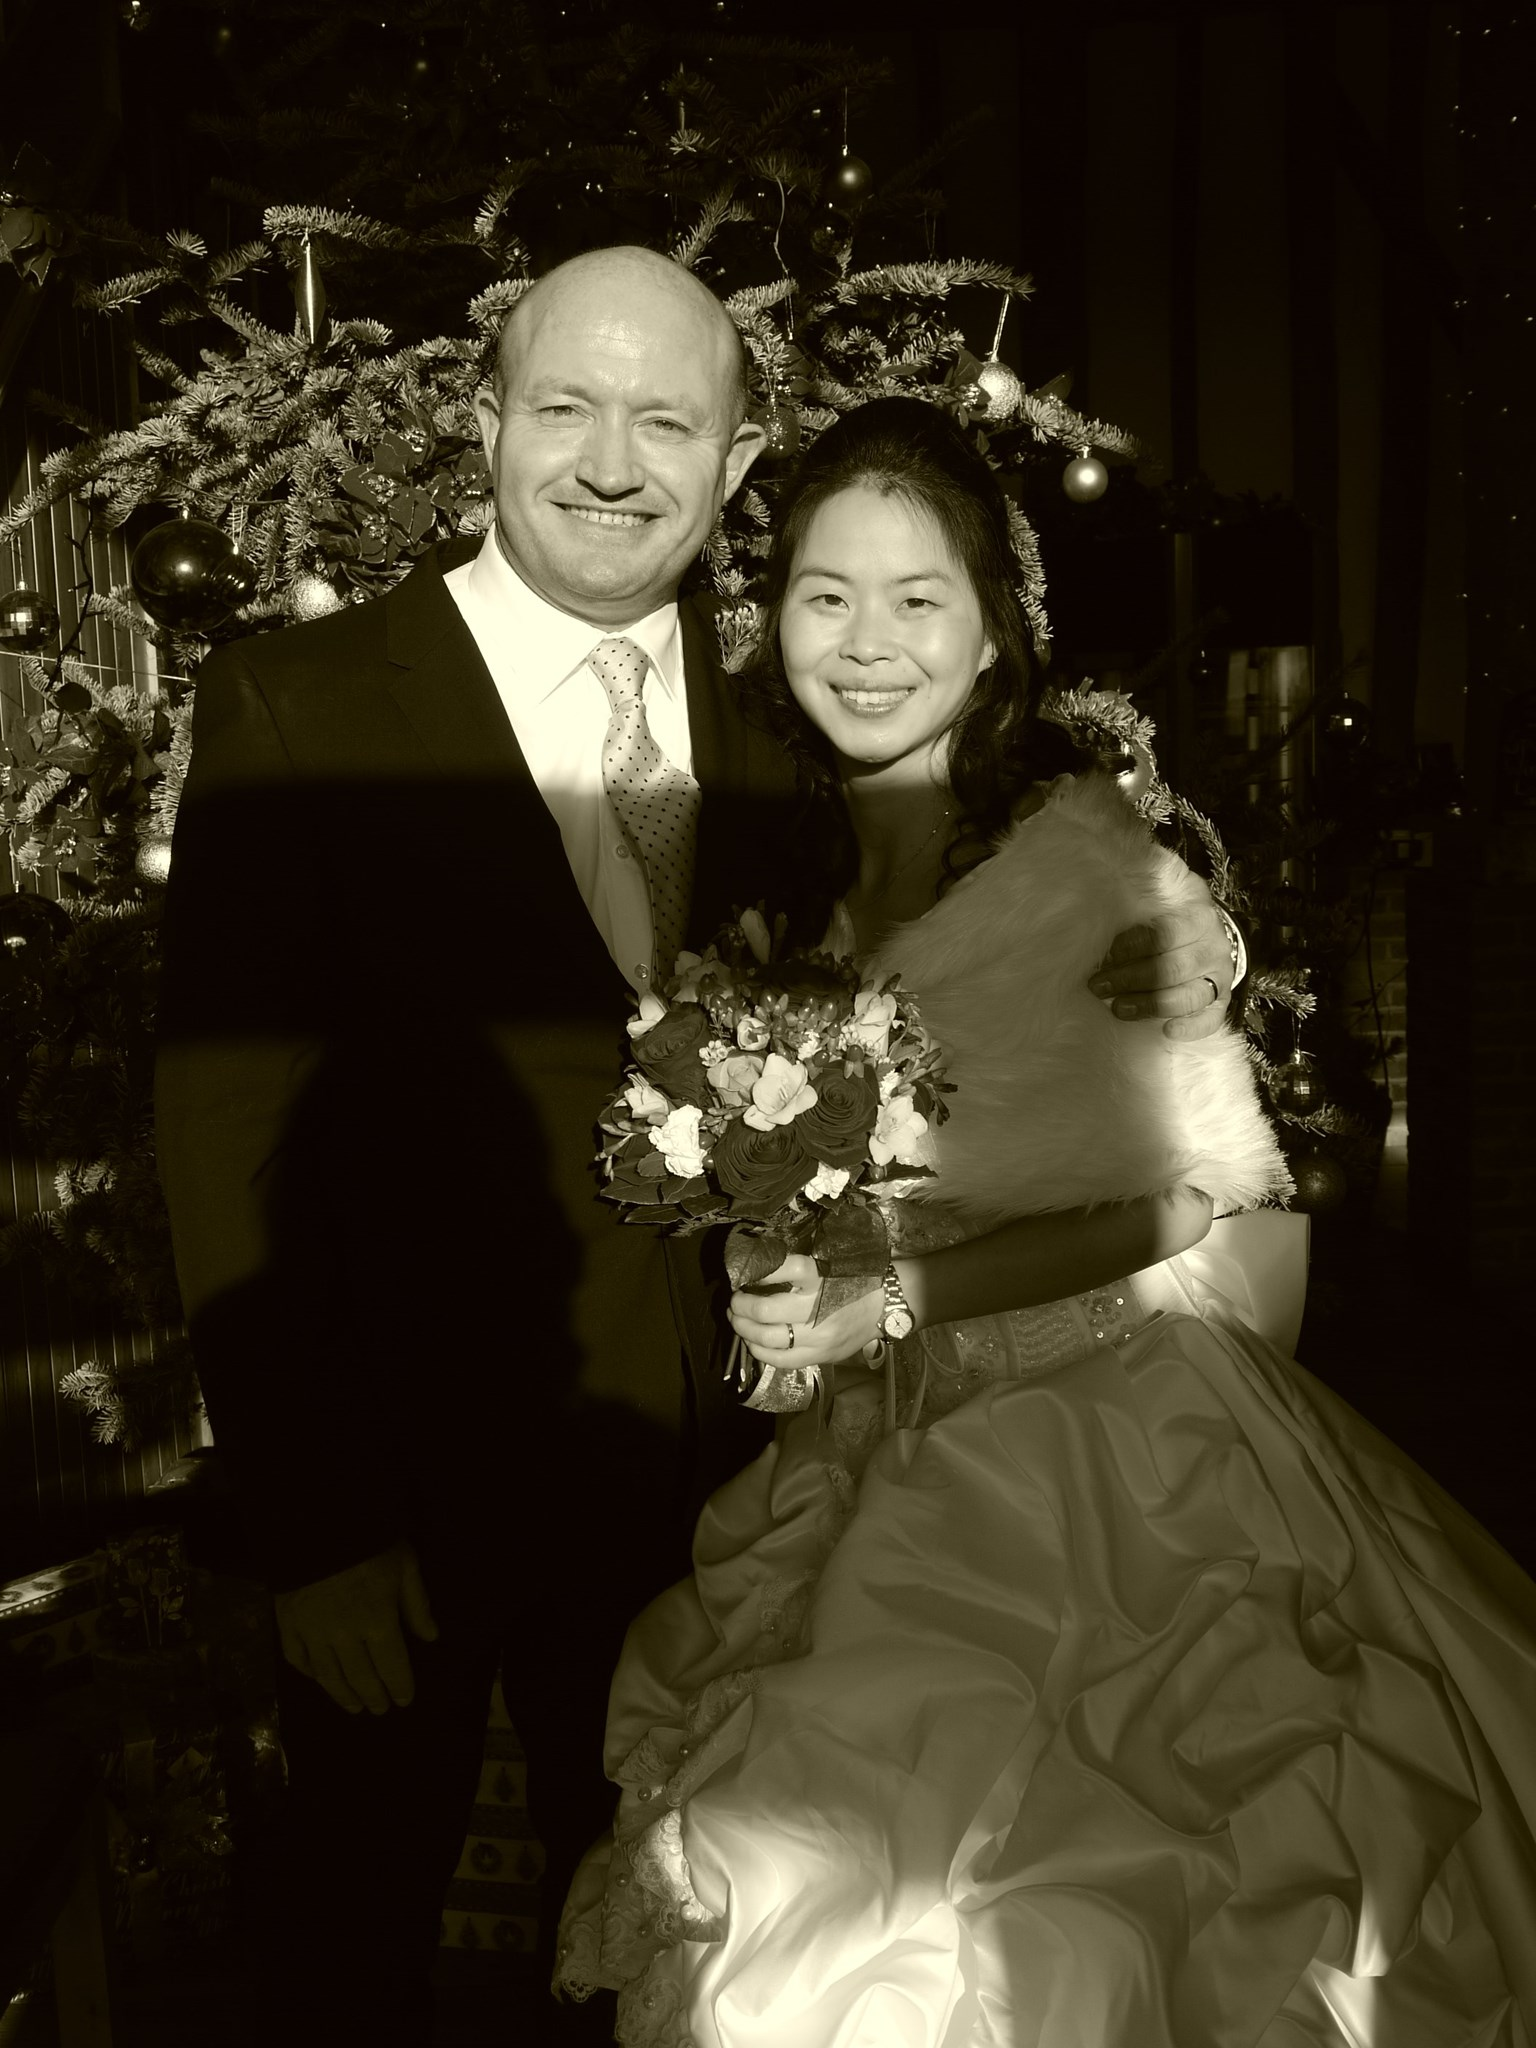 Rob and Yueling's Wedding Day